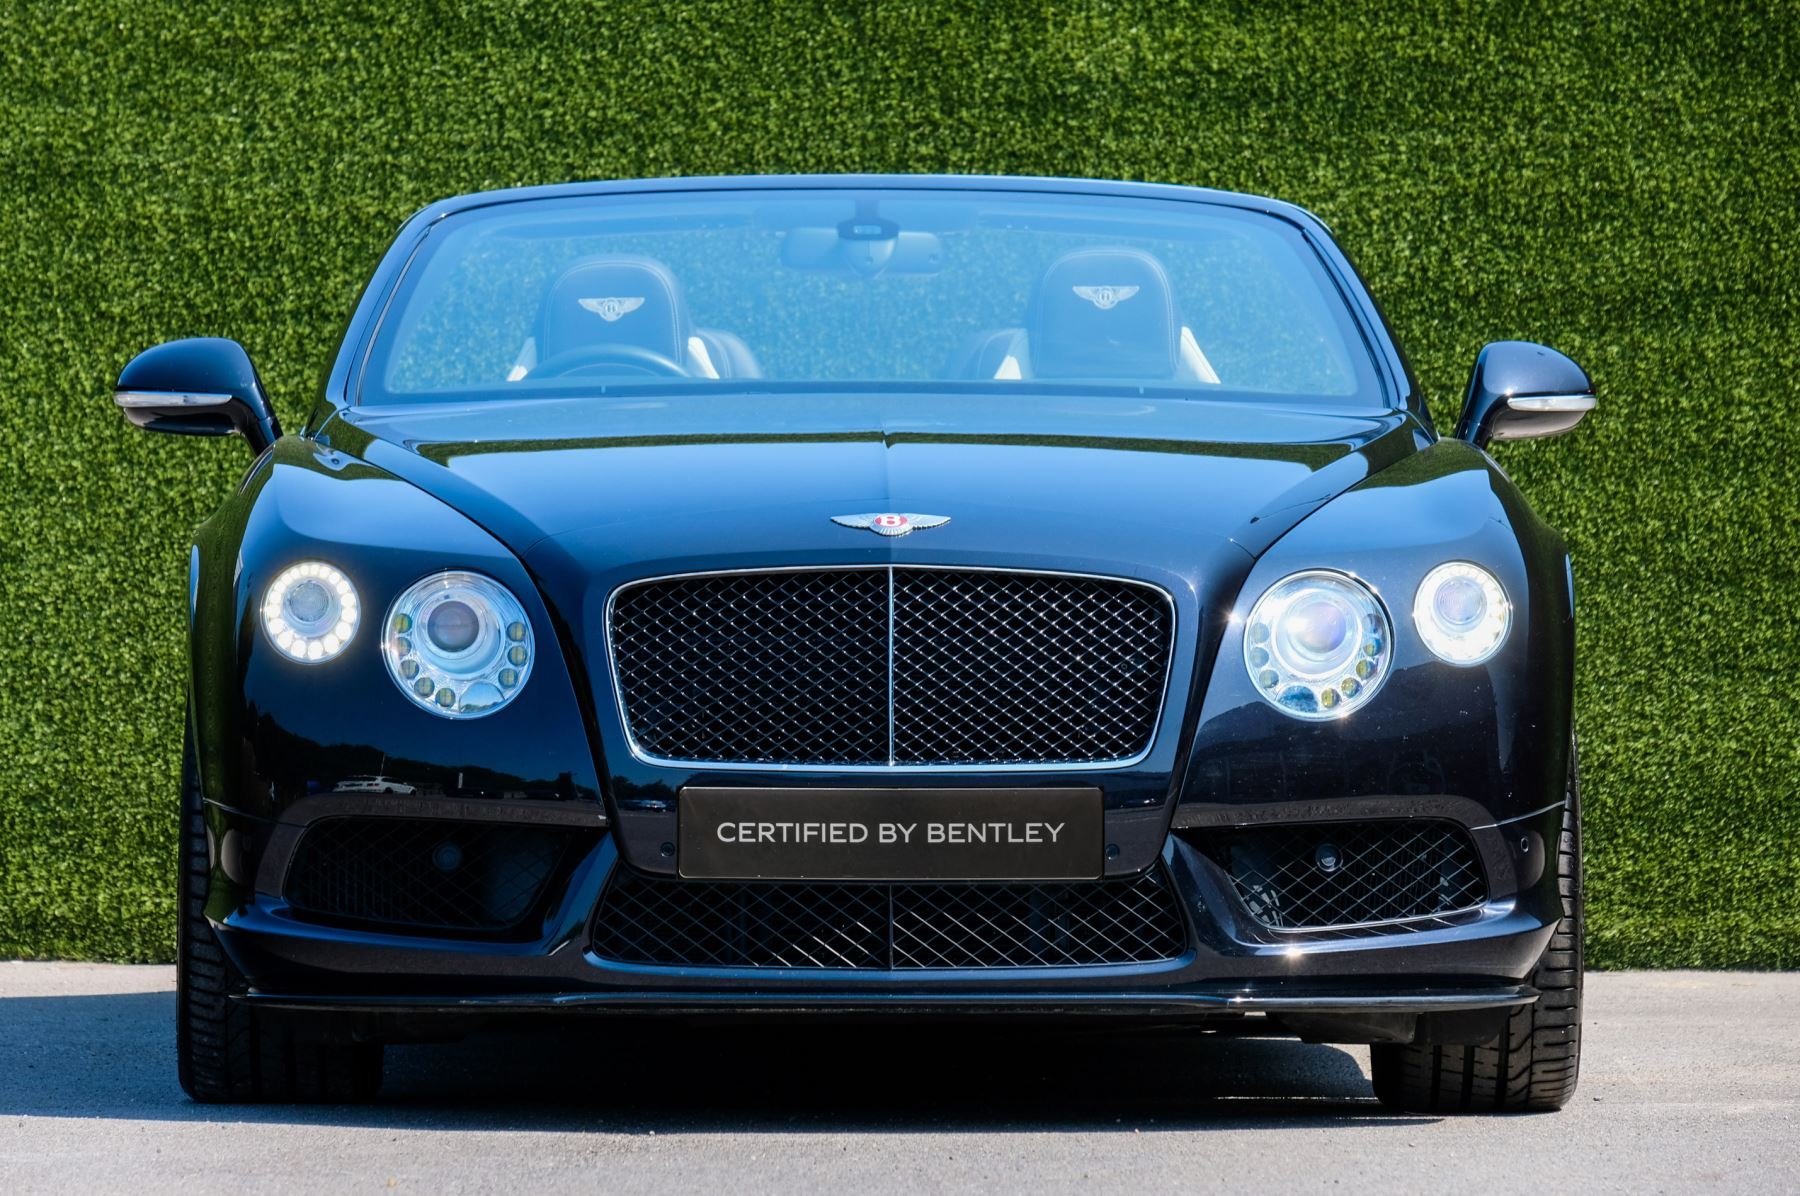 Bentley Continental GTC 4.0 V8 S - Mulliner Driving Specification image 2